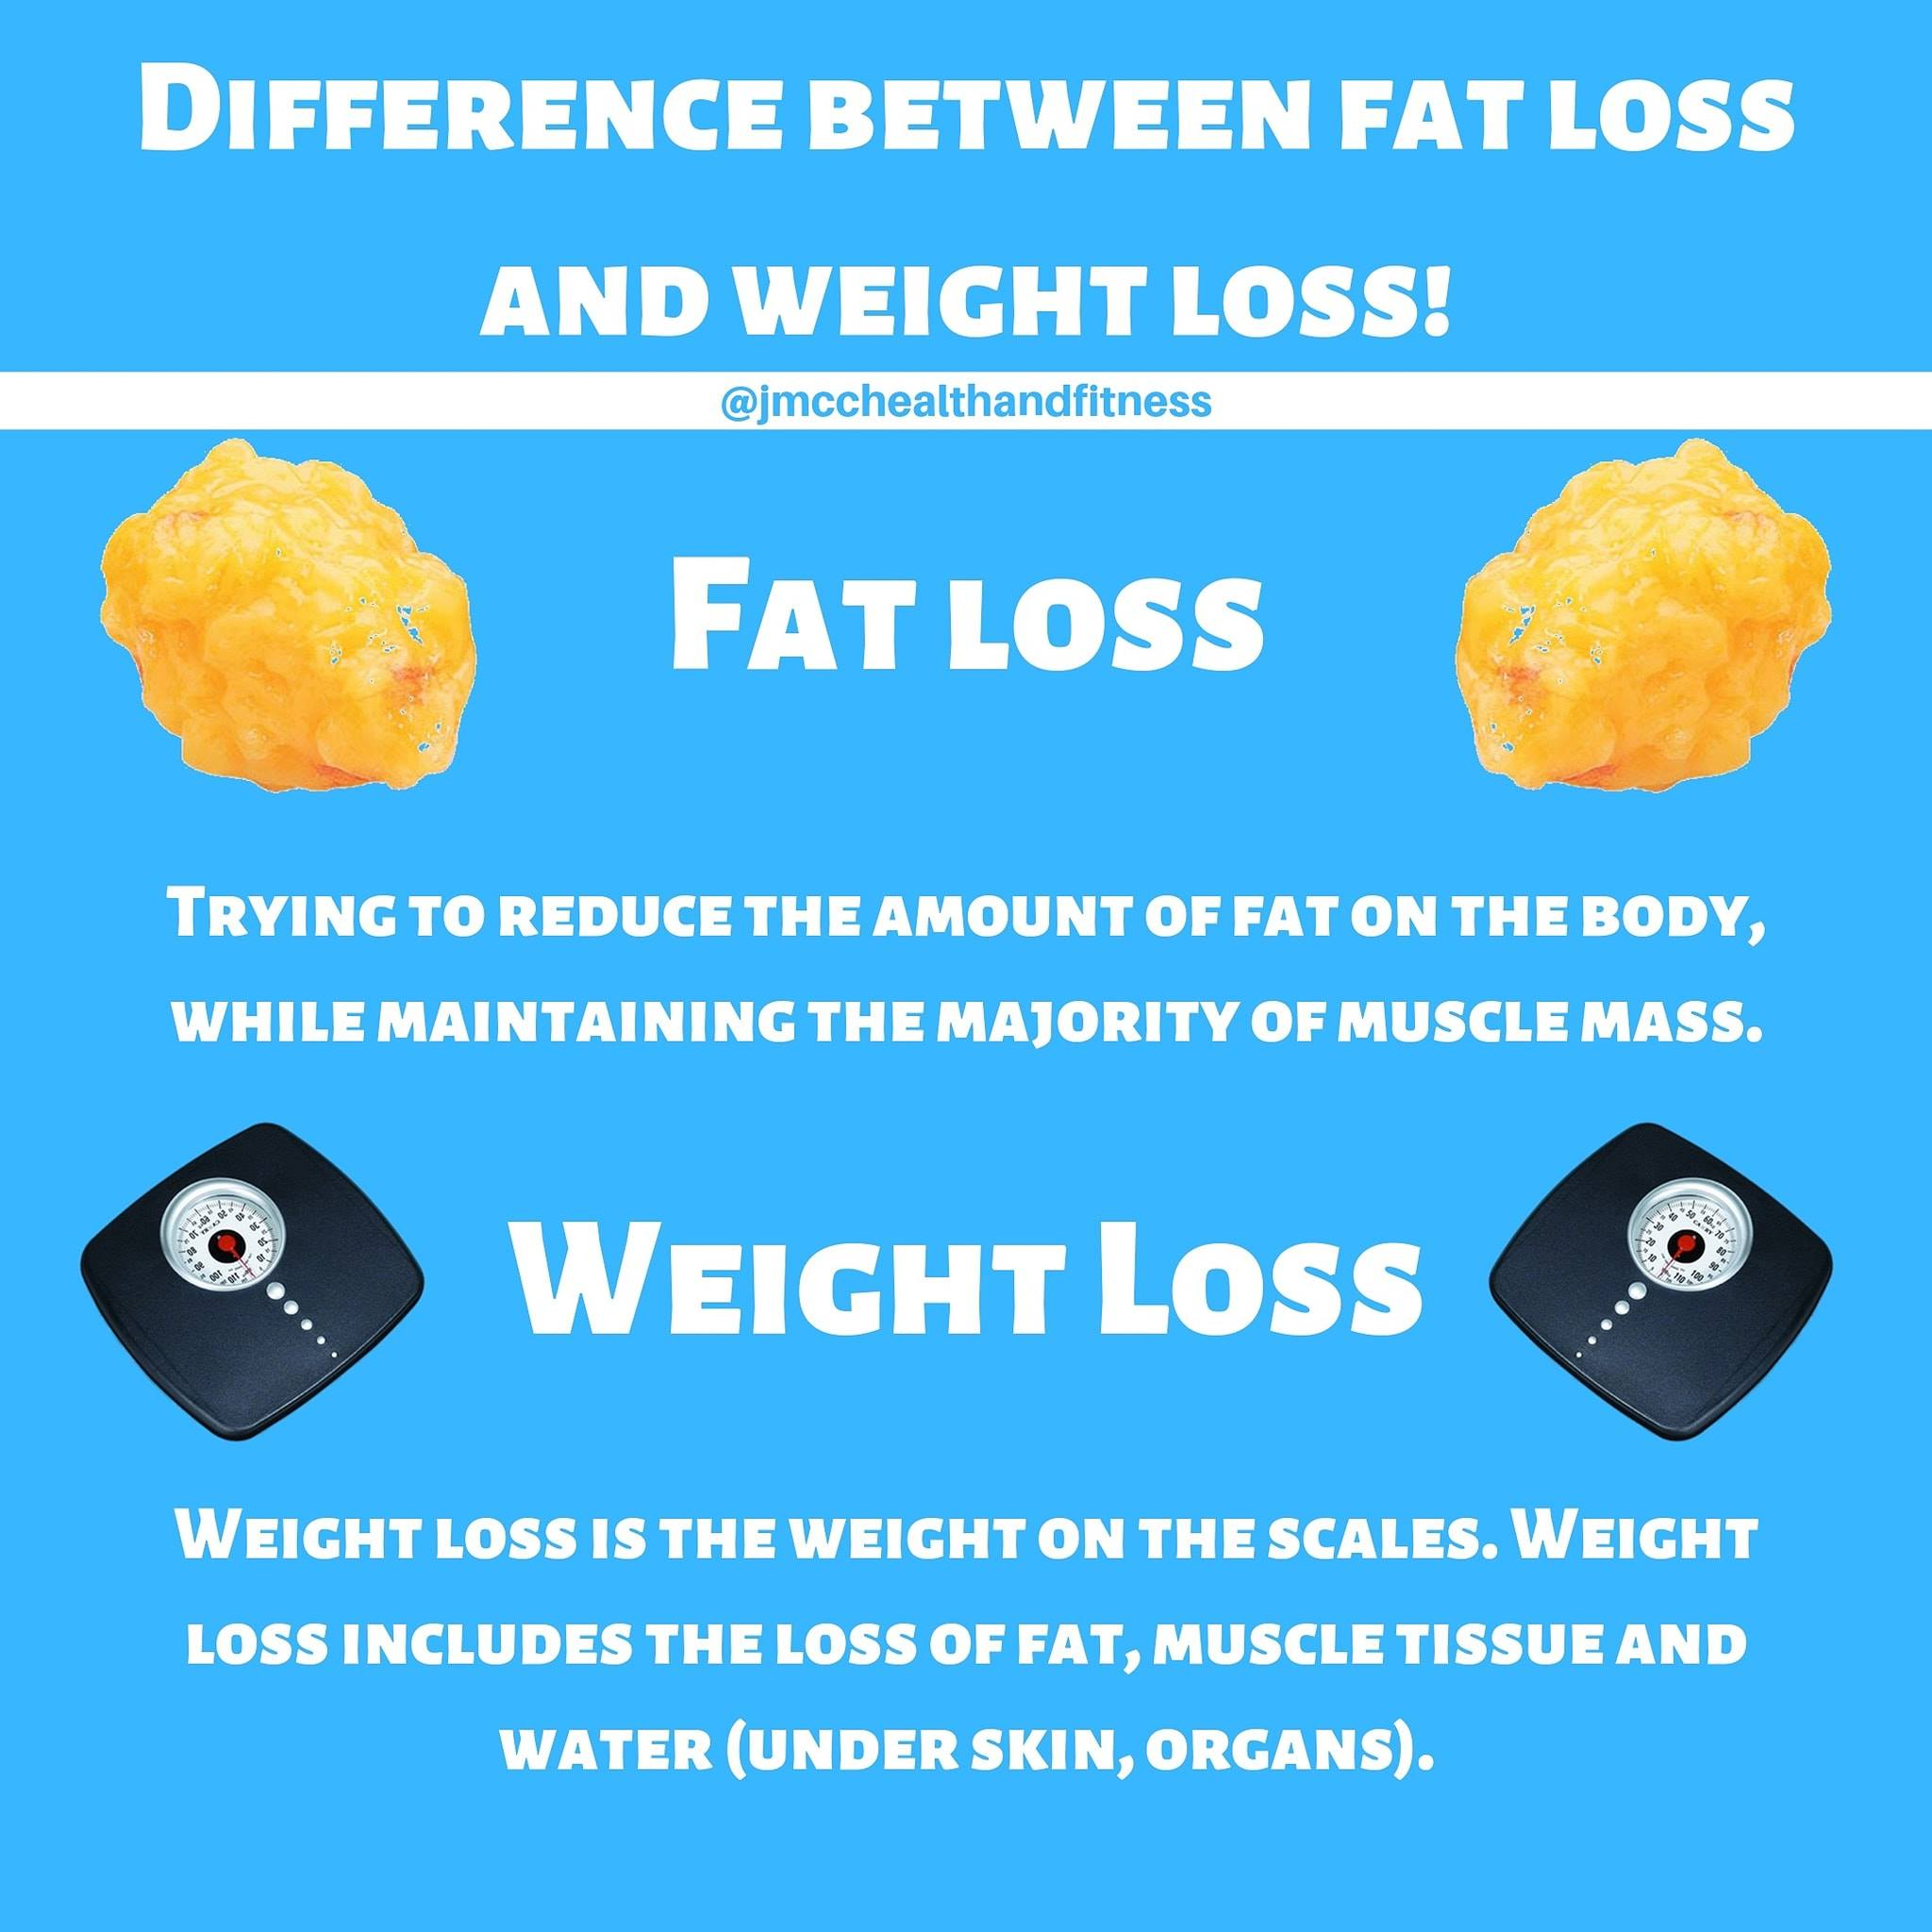 What's the difference between fat loss and weight loss?